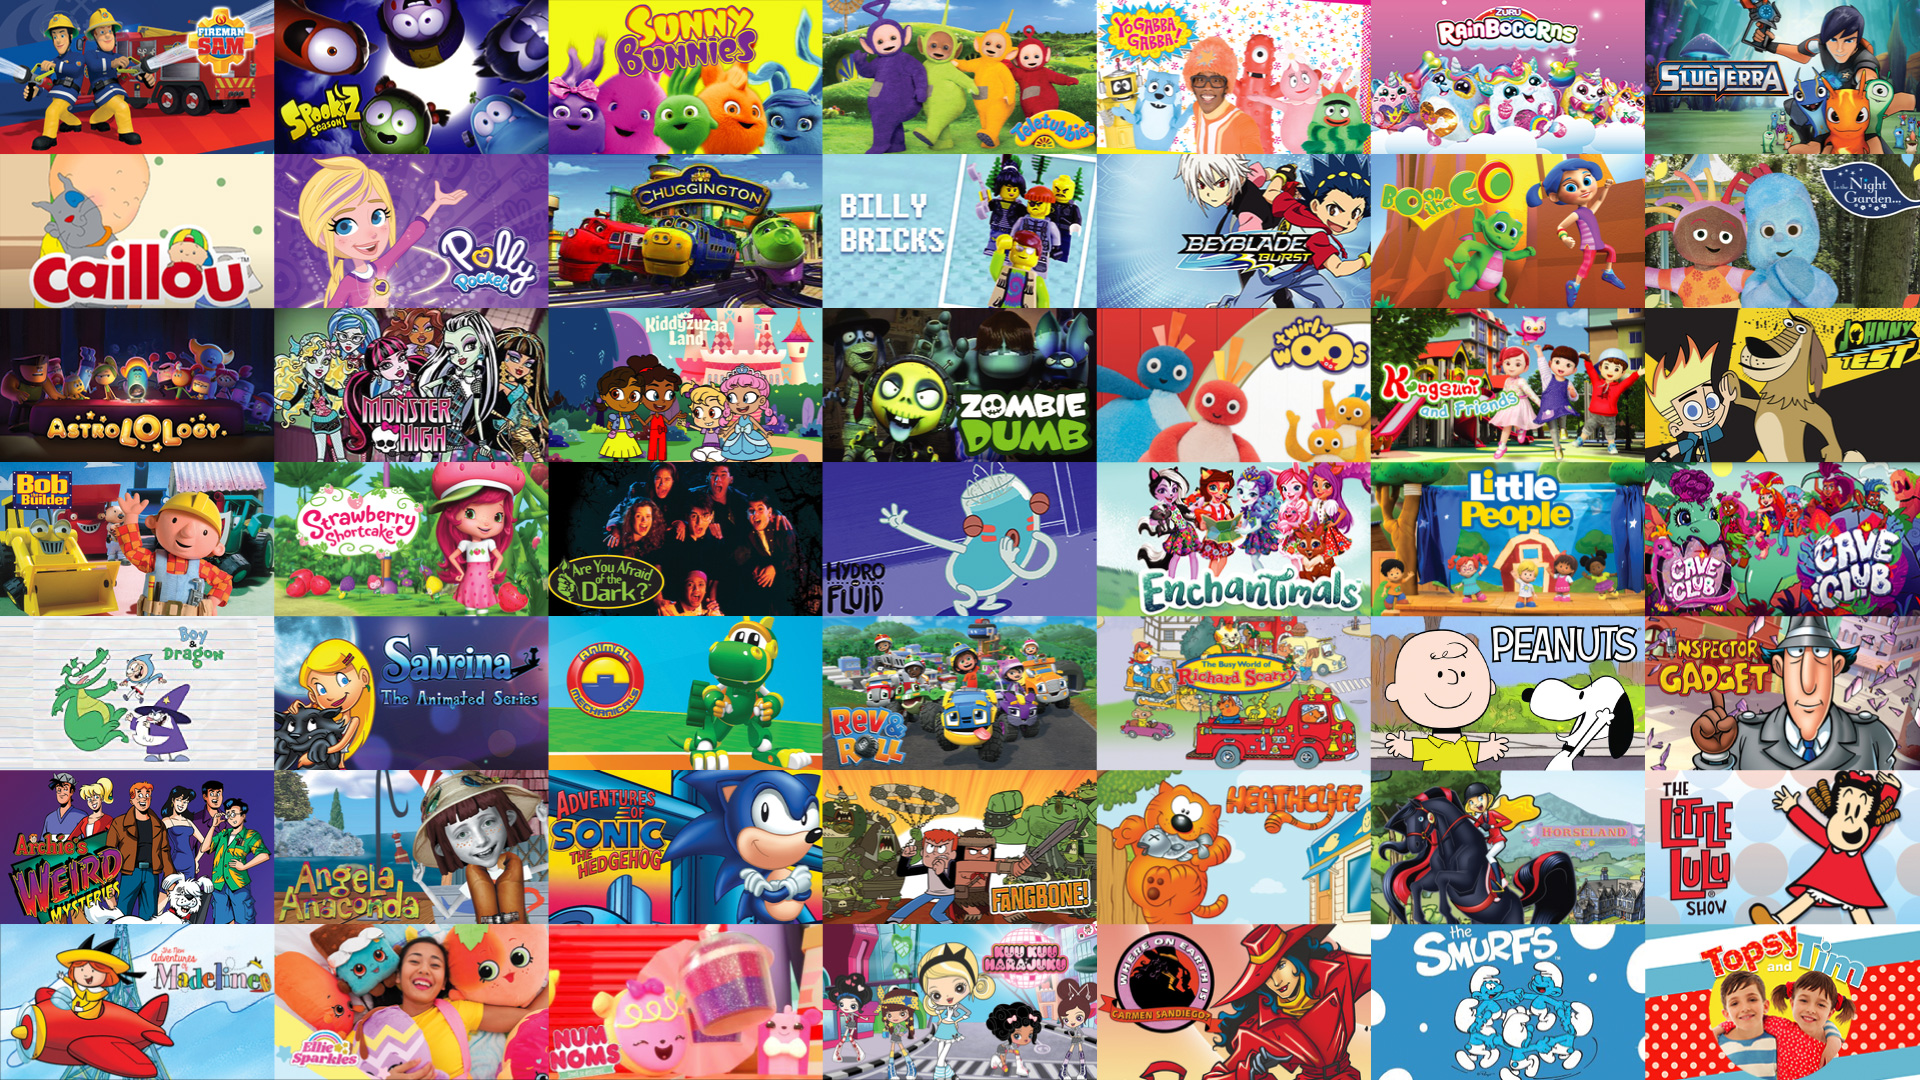 WildBrain Spark-Premium kids and family entertainment content for global audiences on AVOD services